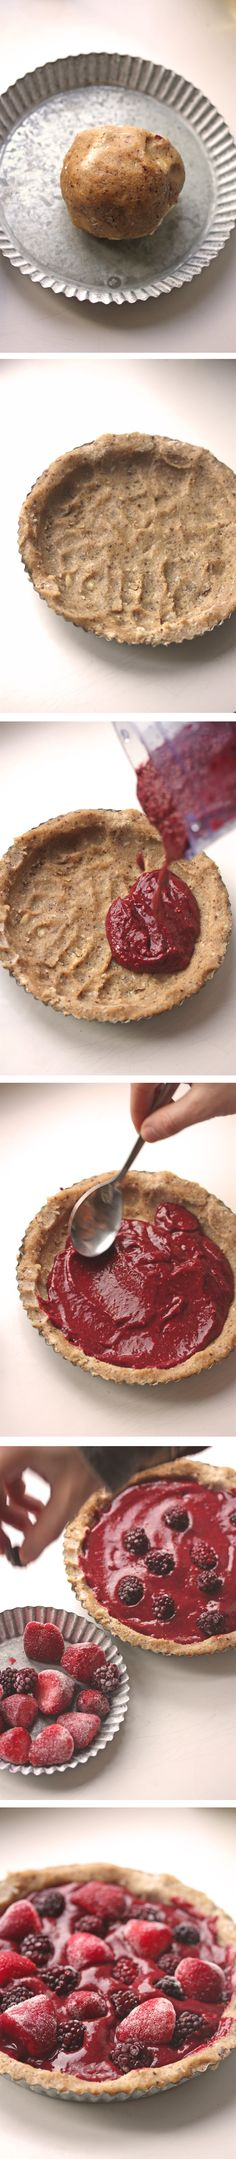 Simple Chia Pudding Pie. #no-bake #raw #vegan